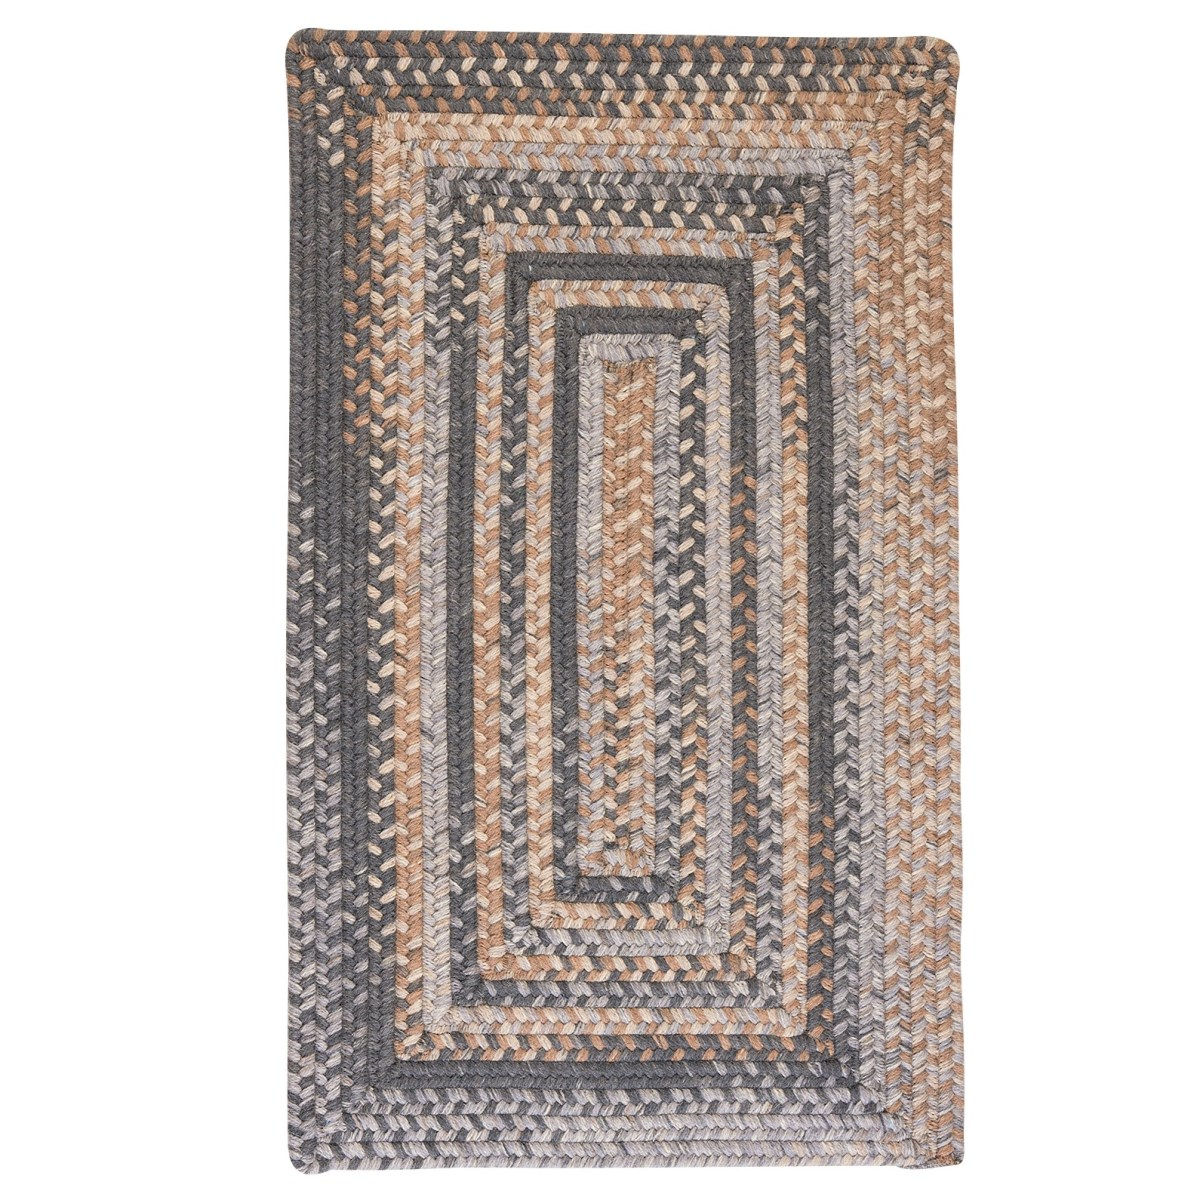 Gloucester Graphite Wool Braided Rectangular Rugs